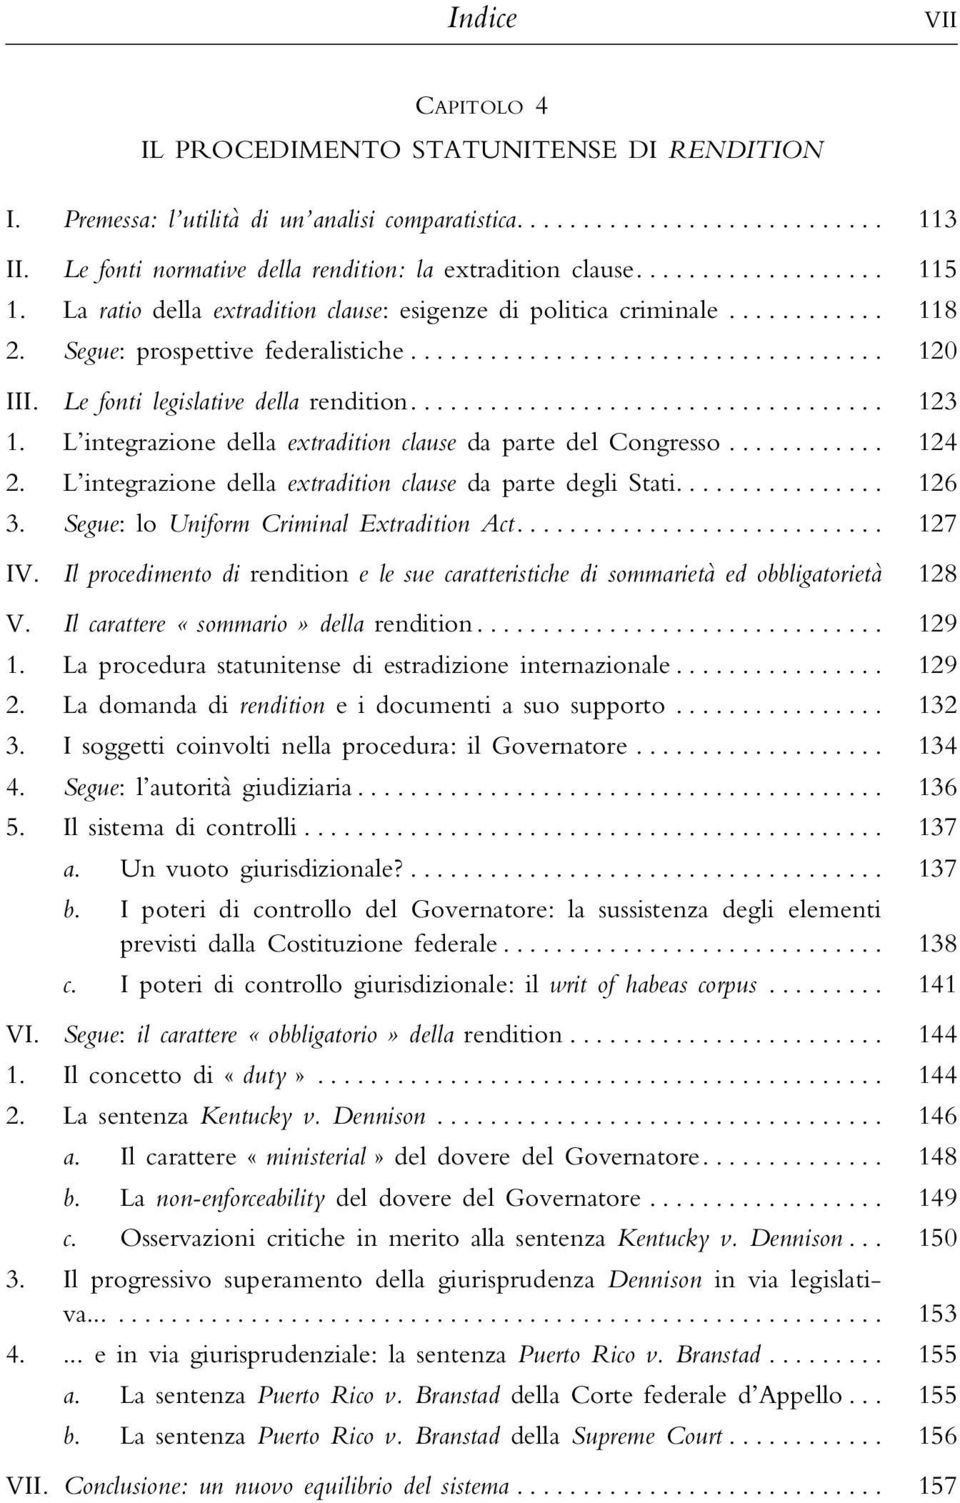 L integrazione della extradition clause da parte del Congresso... 124 2. L integrazione della extradition clause da parte degli Stati... 126 3. Segue: louniform Criminal Extradition Act... 127 IV.